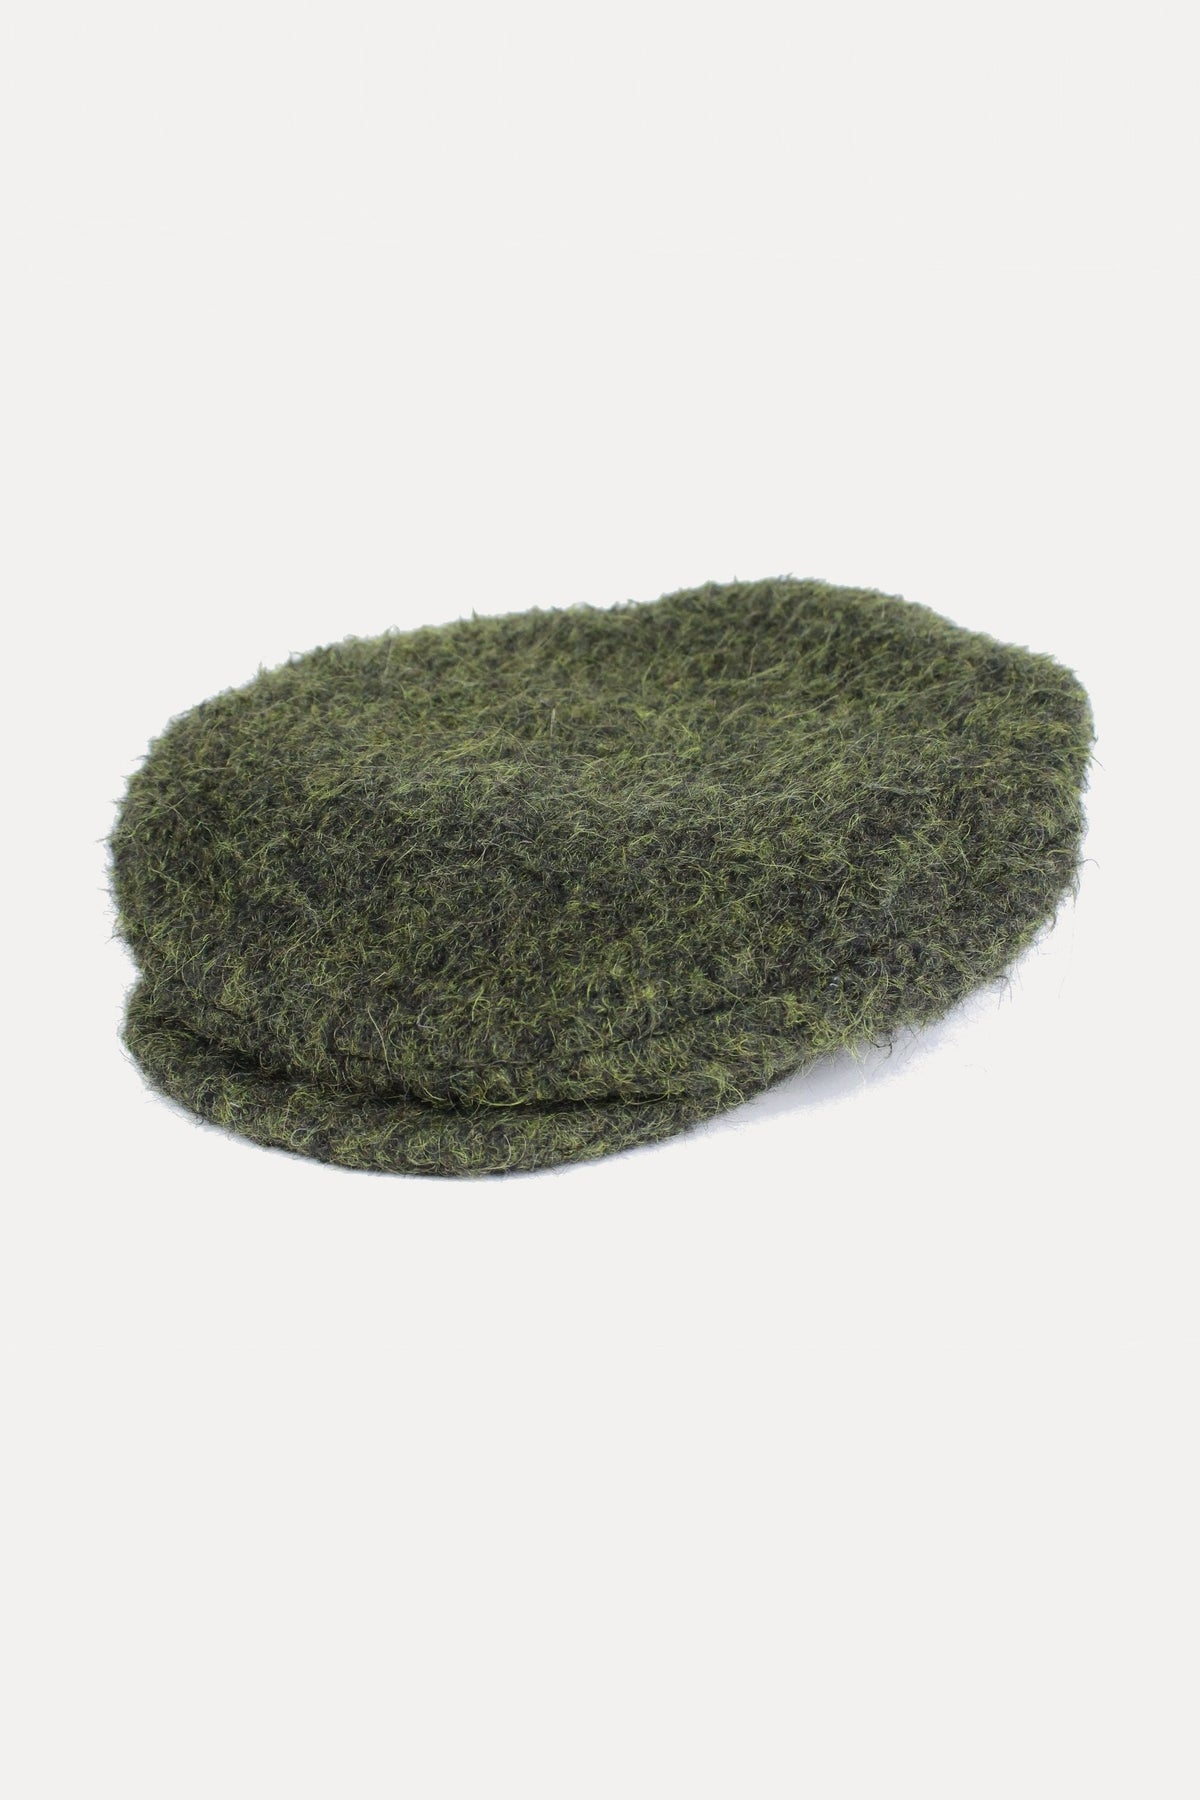 CHEESE CUTTER - MOSS GREEN-hats-A Child Of The Jago